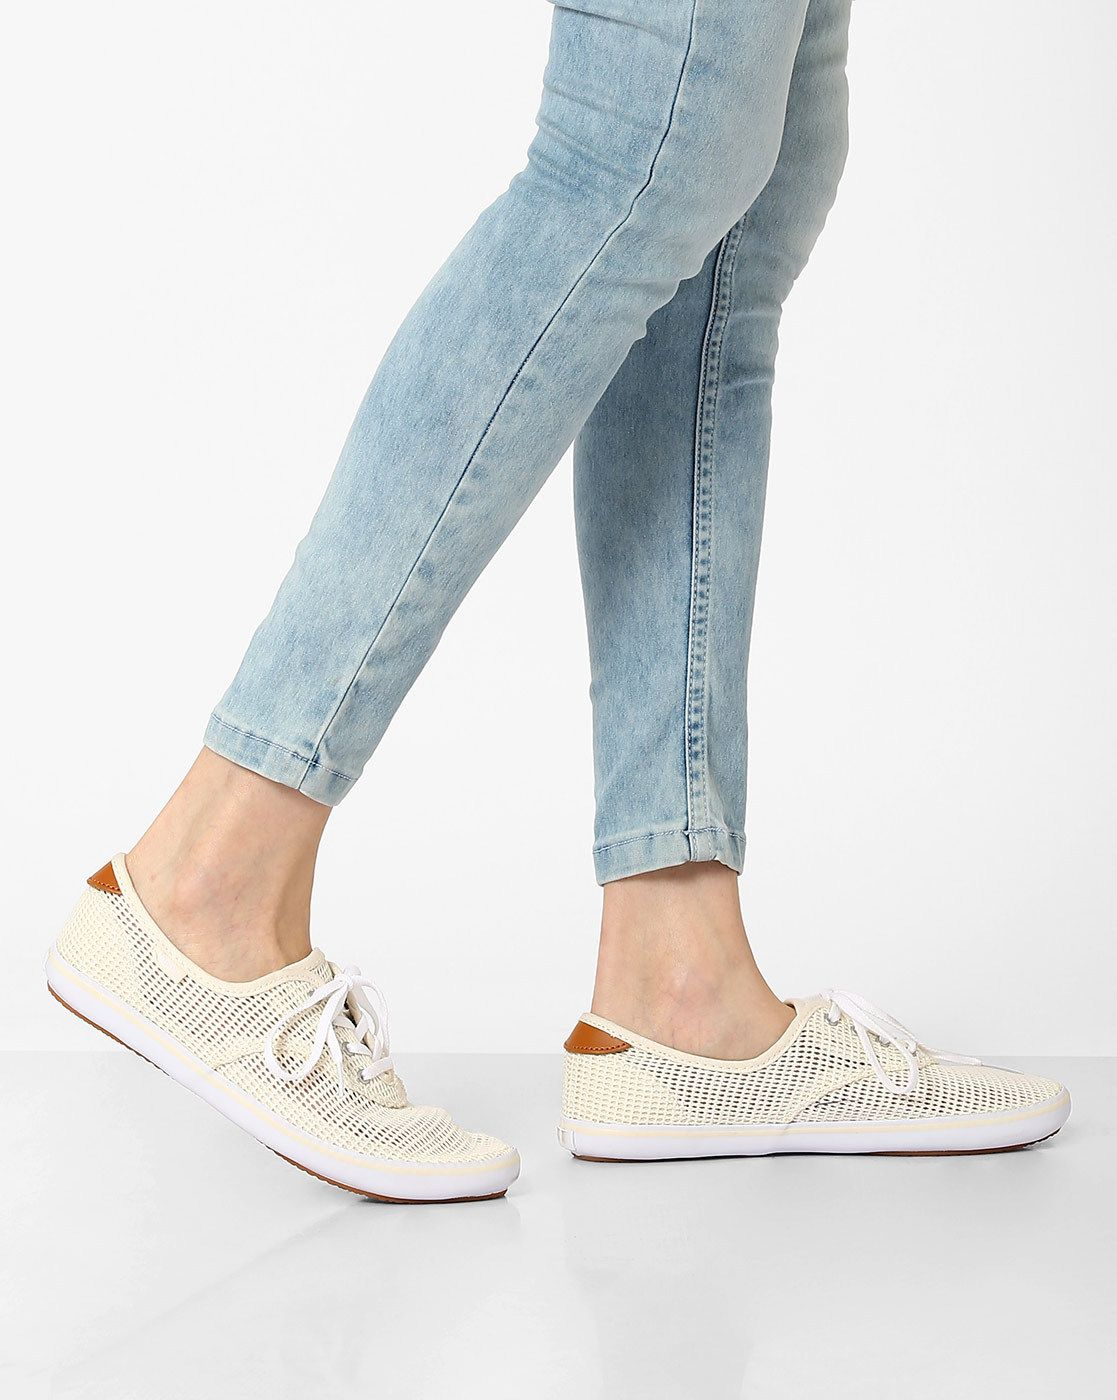 dedd80862d Buy Vans Authentic Lo Pro Panelled Casual Shoes online in India at best  price. These casual shoes crafted with a mesh-like upper